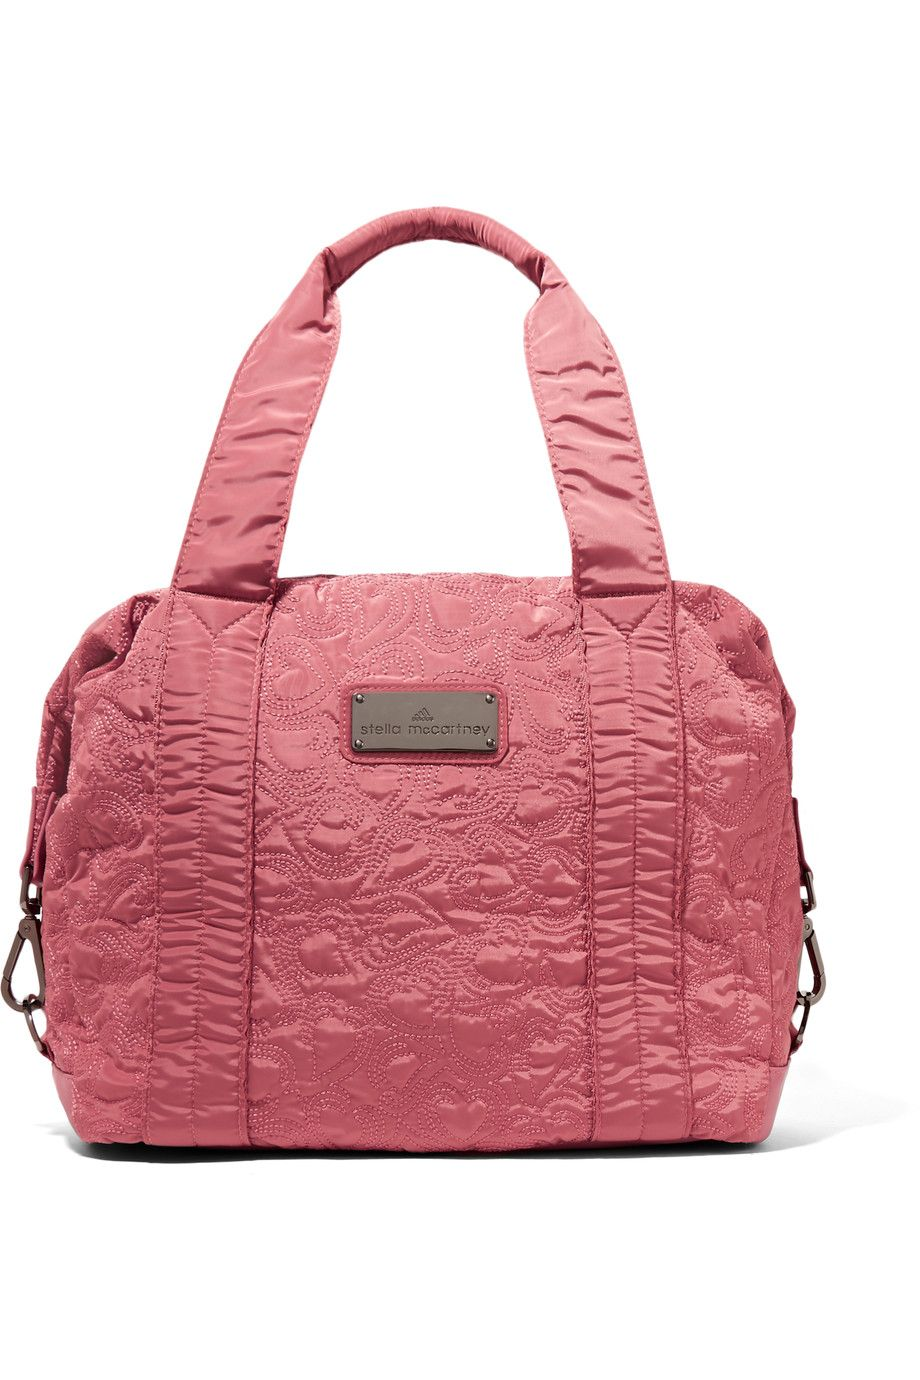 ADIDAS BY STELLA MCCARTNEY Embroidered Satin-Twill Tote.   adidasbystellamccartney  bags  shoulder bags  hand bags  tote   21c5506bd7